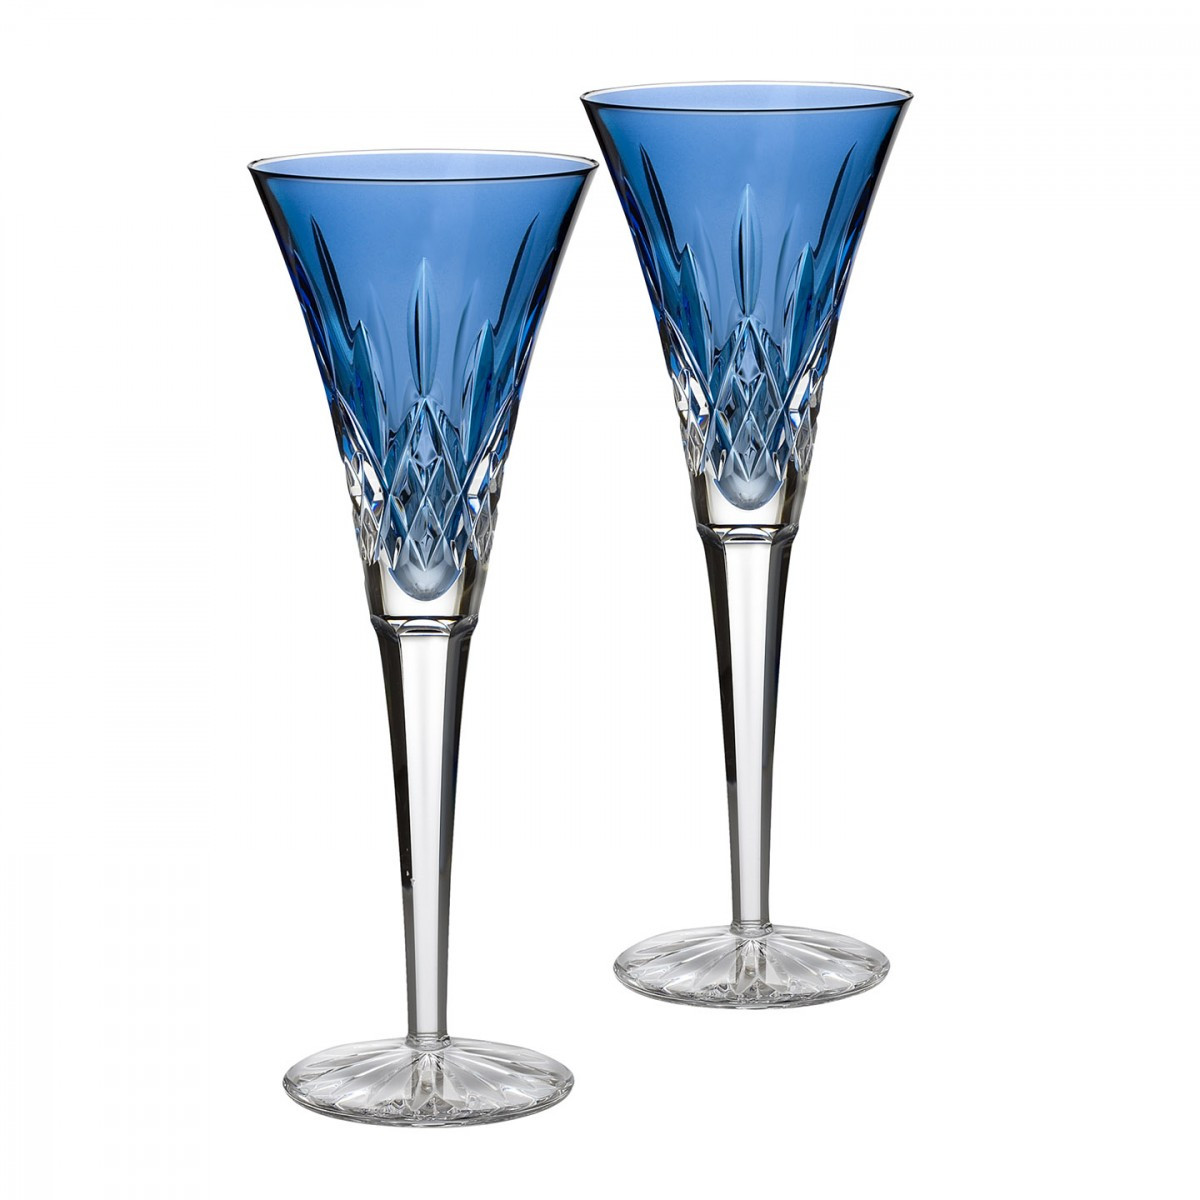 waterford lismore 8 flared vase of lismore sapphire toasting flute pair waterford us intended for lismore sapphire toasting flute pair